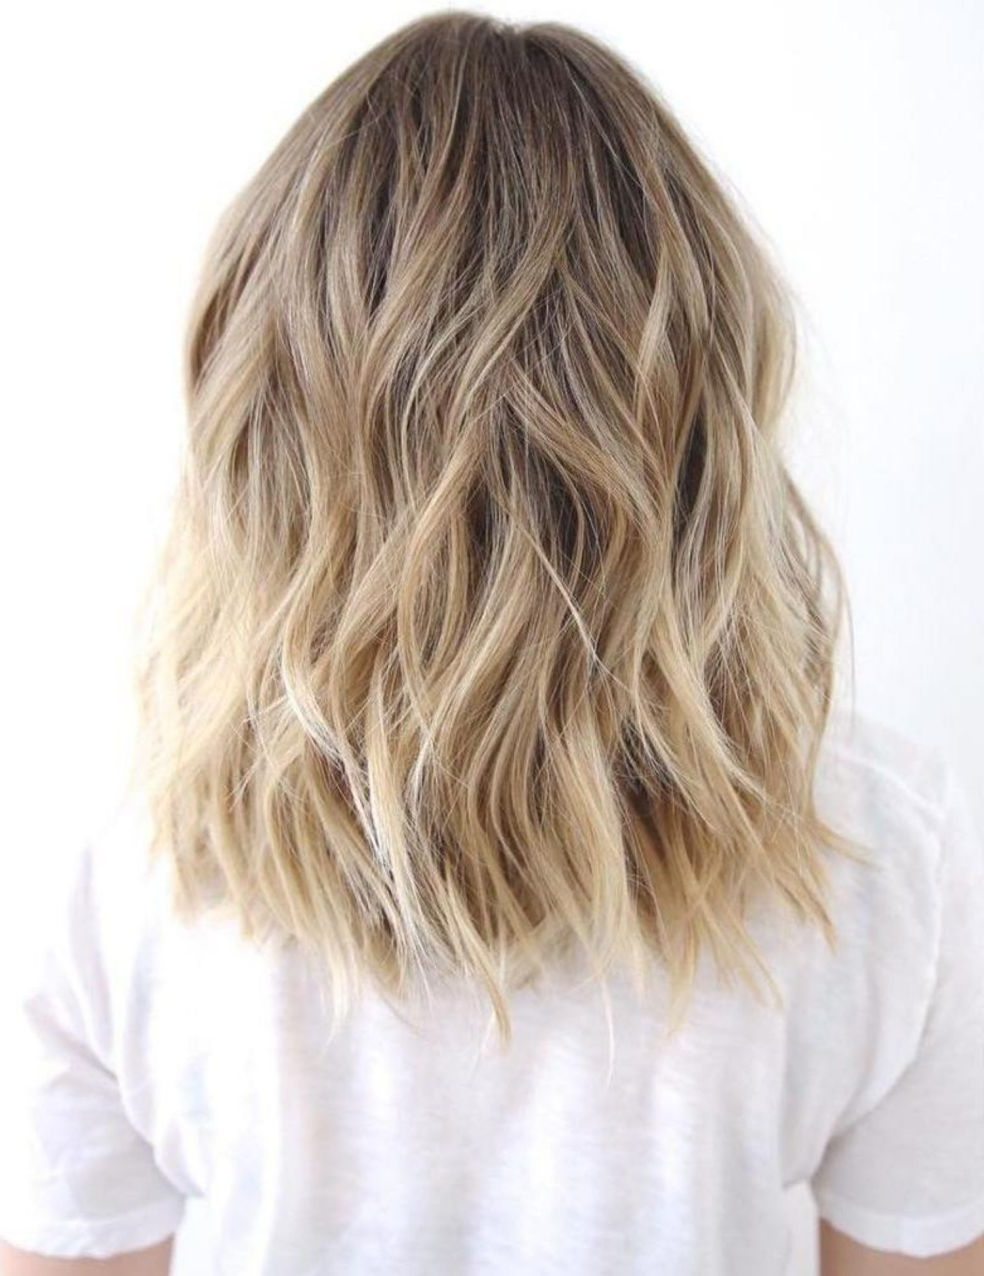 60 Best Variations Of A Medium Shag Haircut For Your Pertaining To Widely Used Pretty Wavy Blonde Shag Haircuts (View 6 of 20)